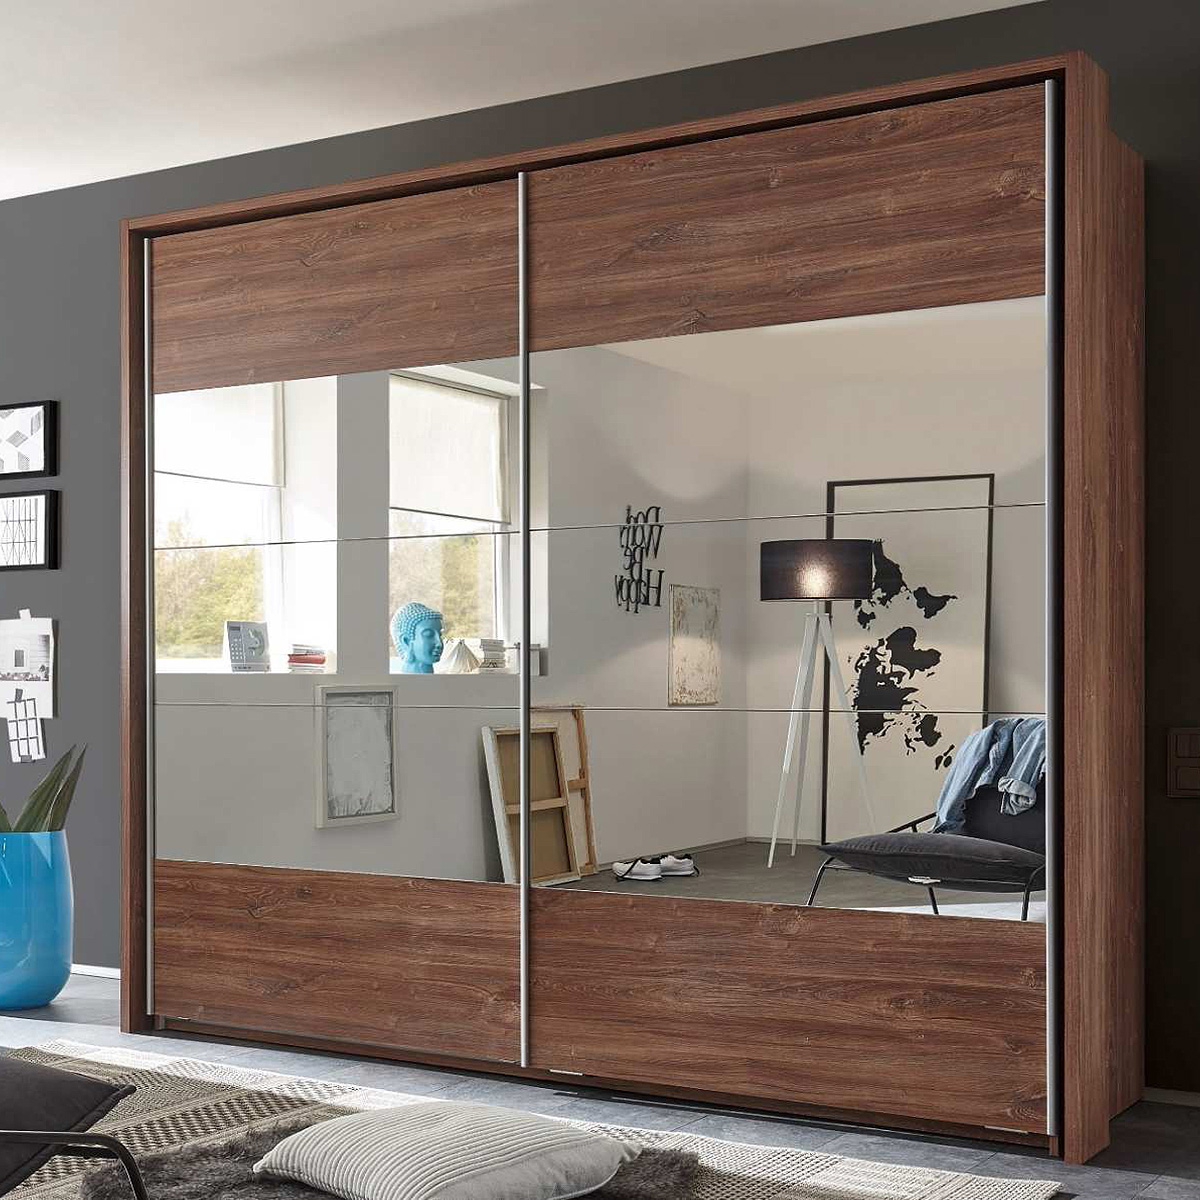 schwebet renschrank penta 4 kleiderschrank schrank in akazie mit spiegel 215 cm ebay. Black Bedroom Furniture Sets. Home Design Ideas